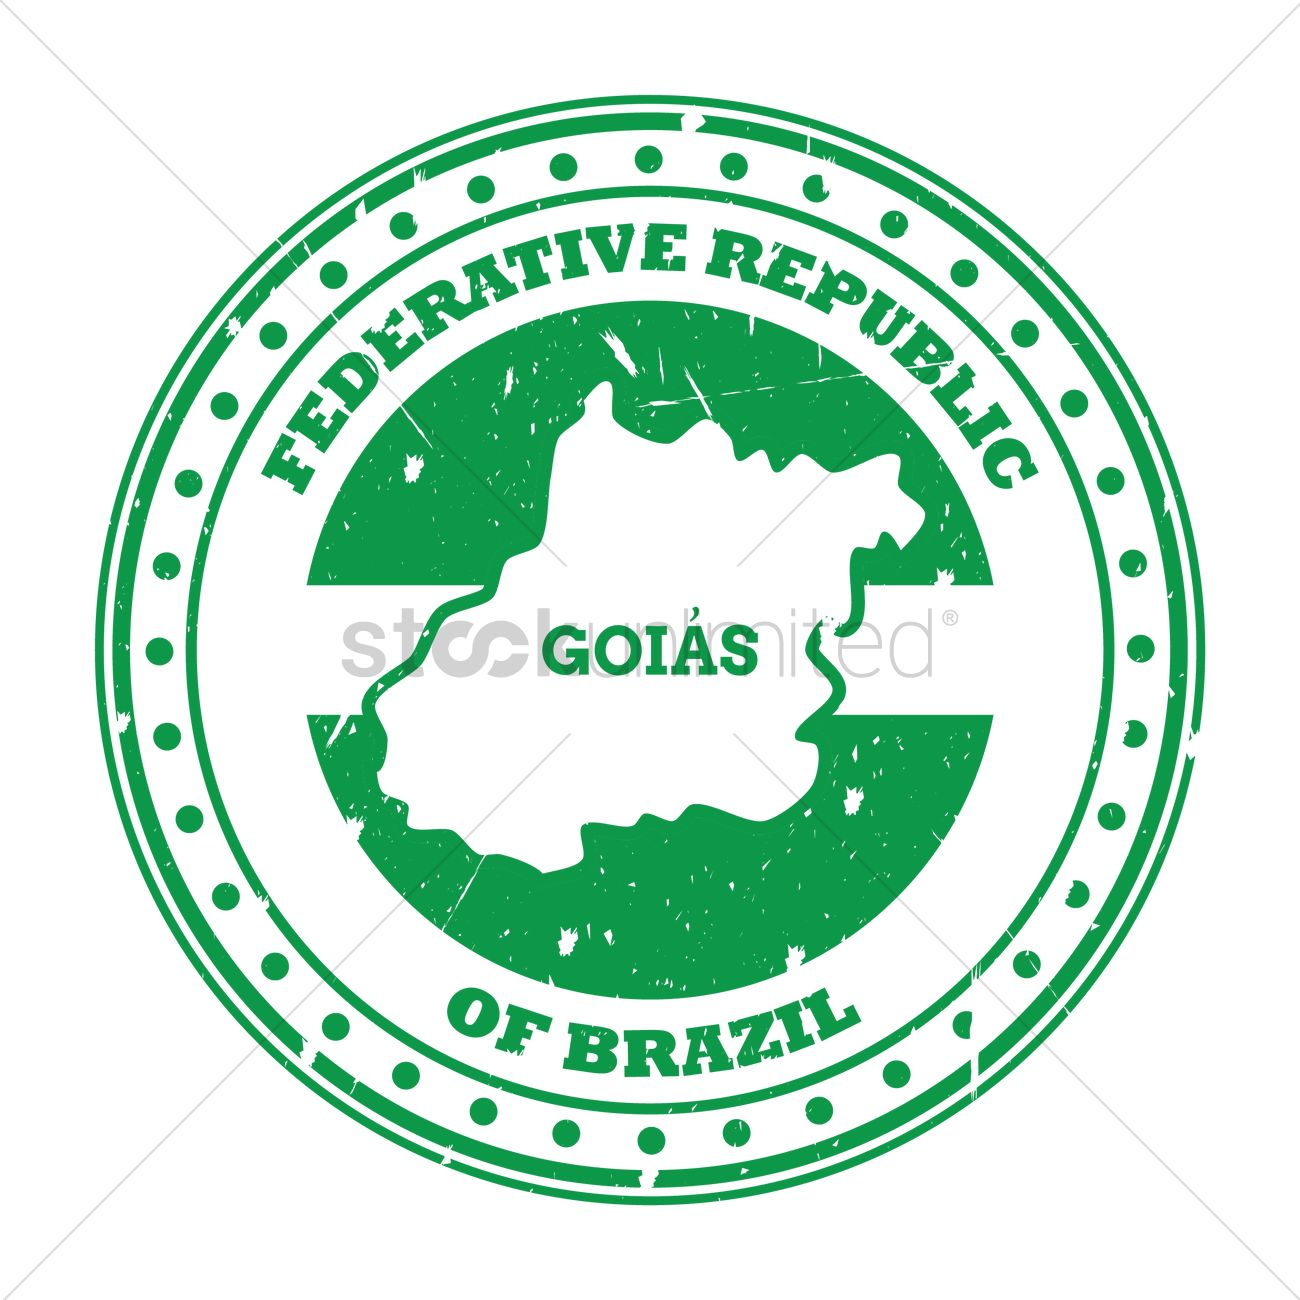 Goias map stamp Vector Image - 1580380   StockUnlimited